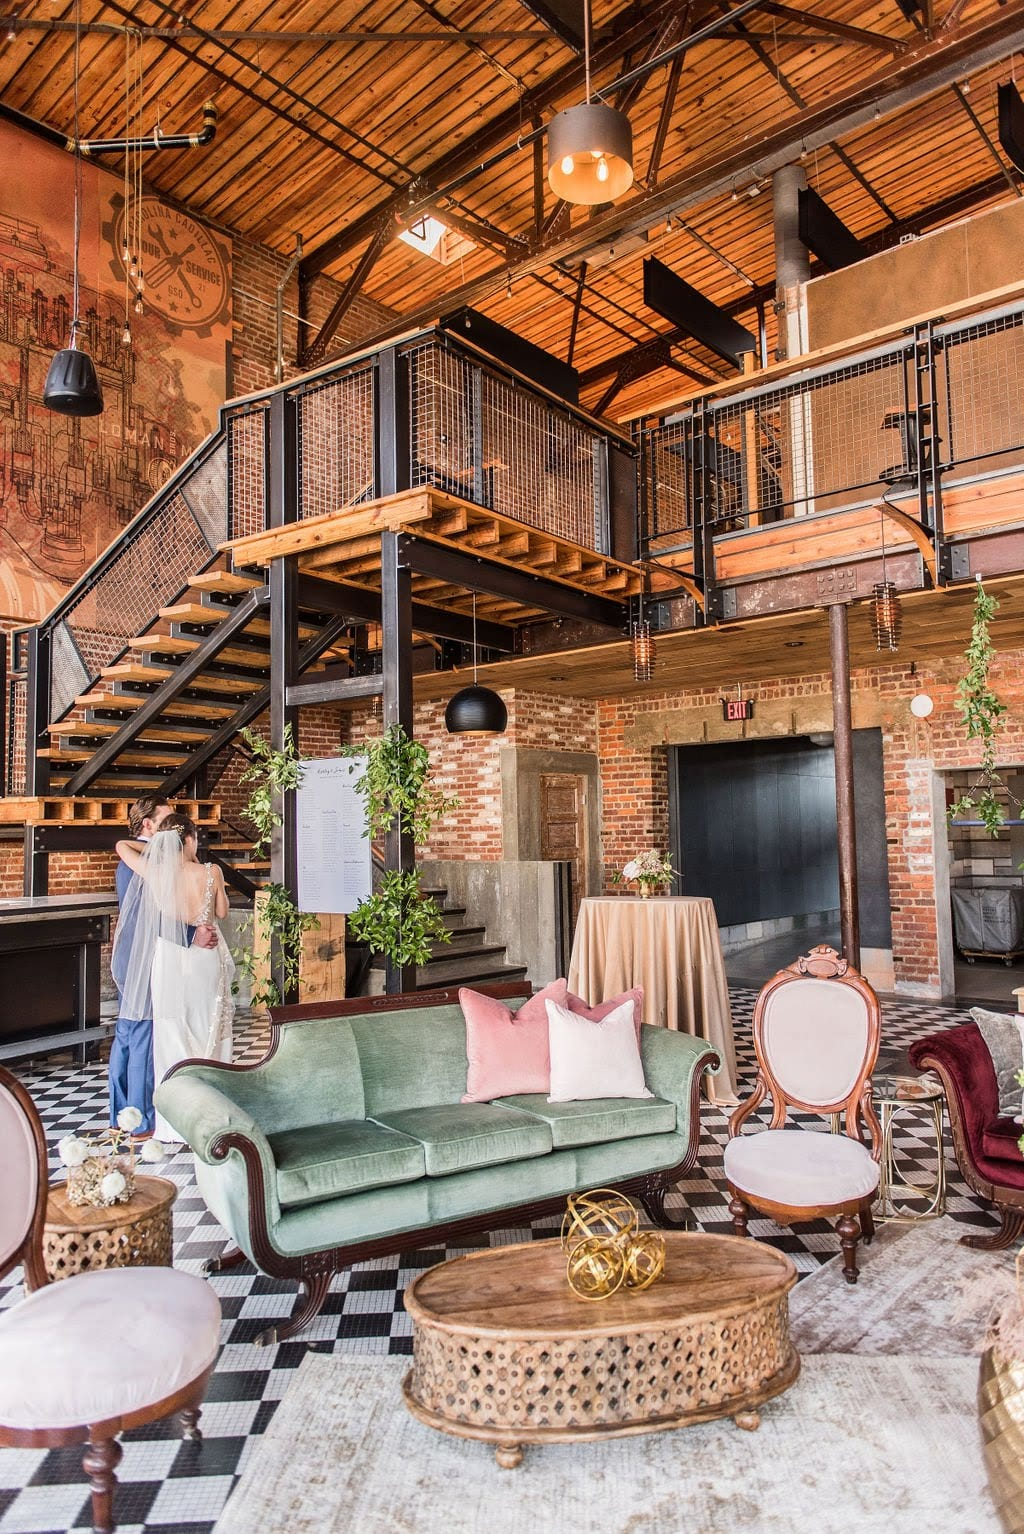 Velvet vintage sofa and chairs with antique rugs and wood carved coffee table in an industrial lounge